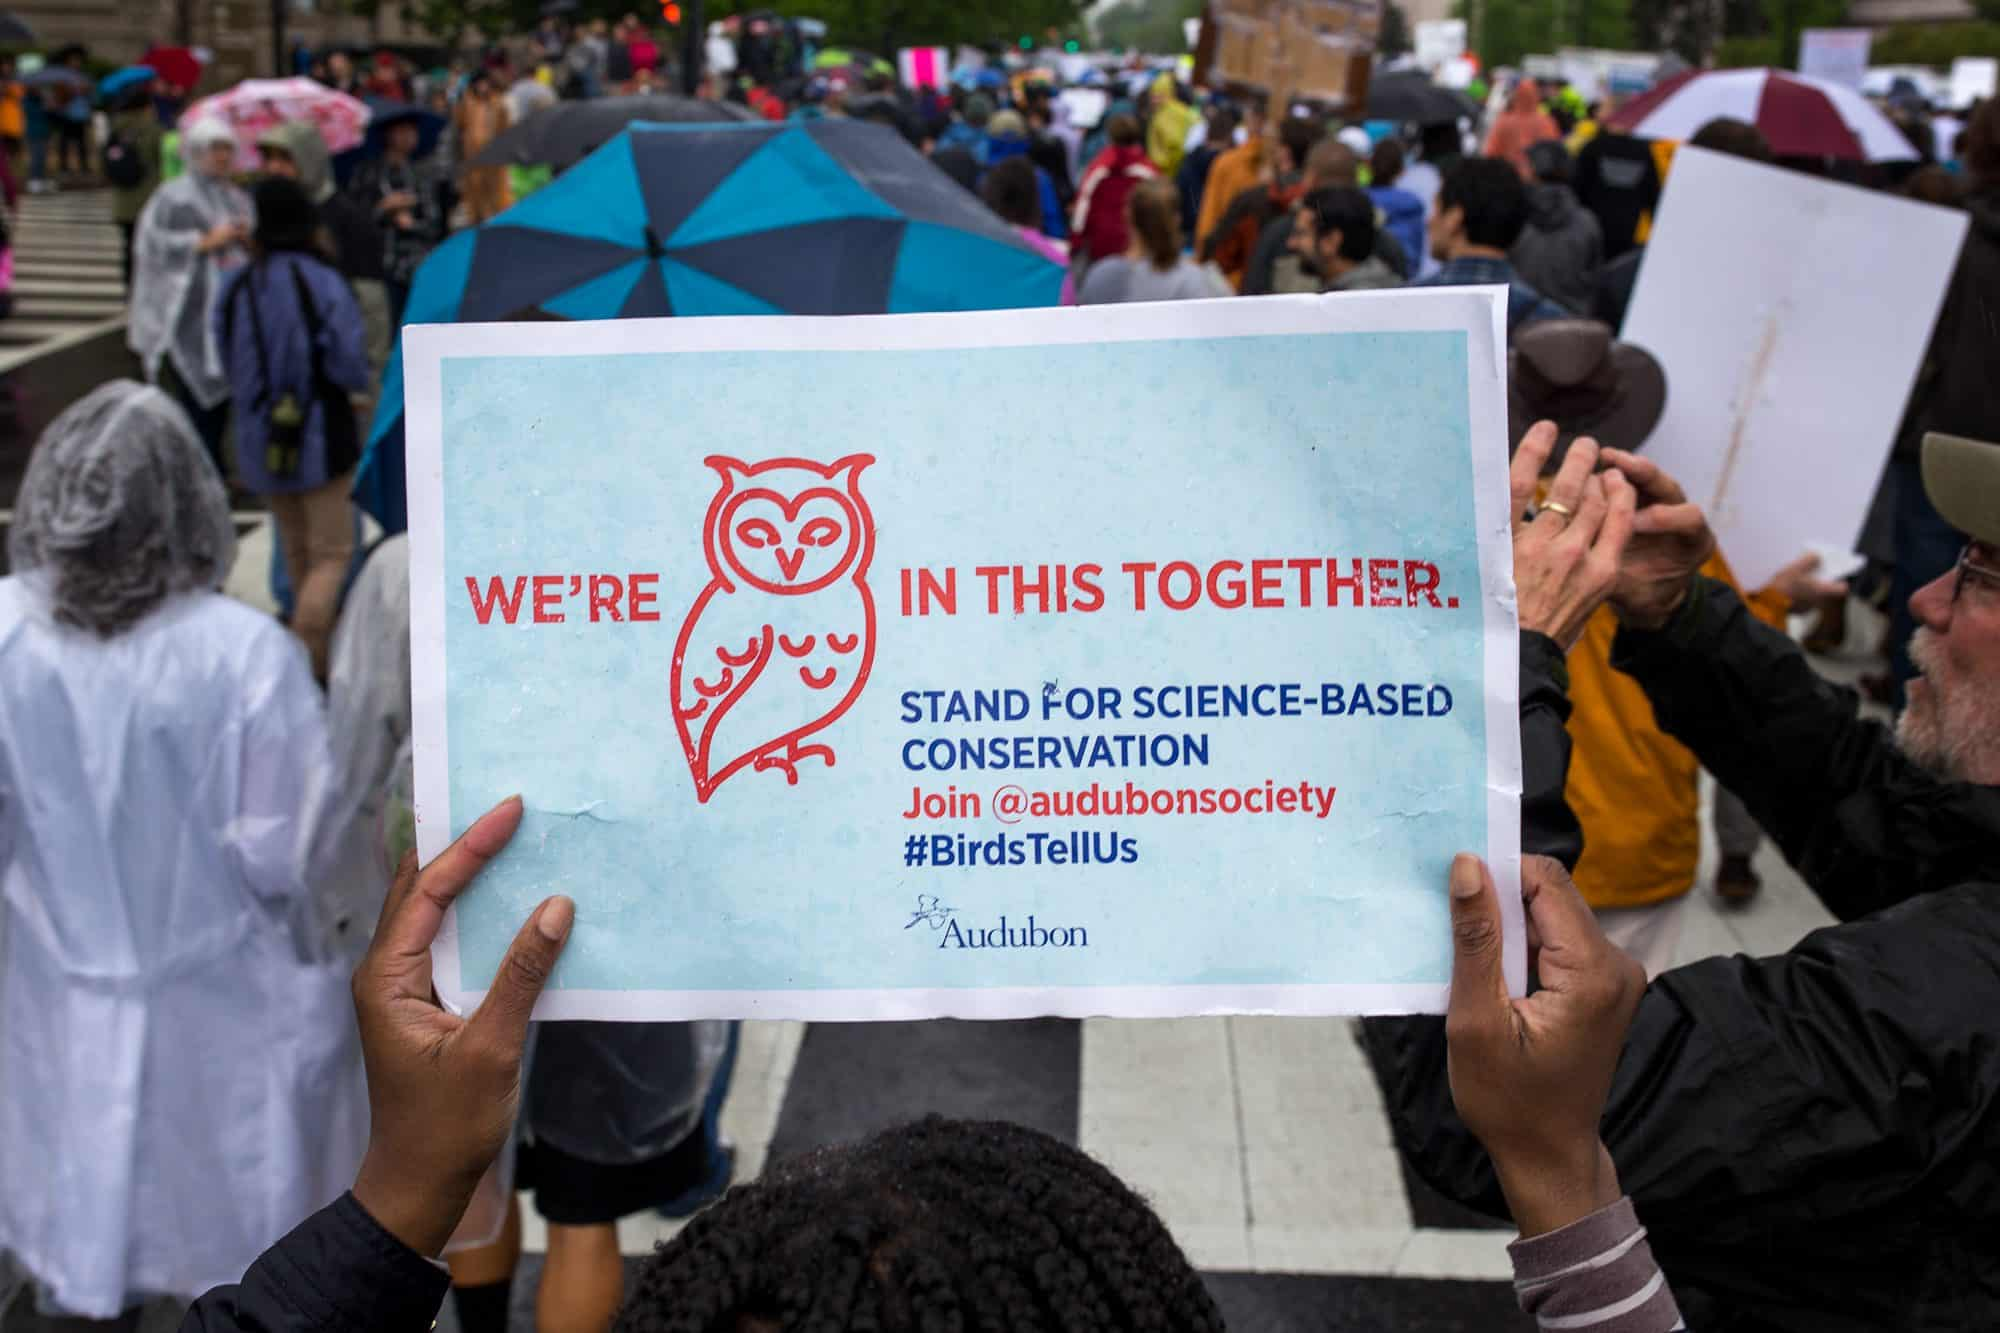 National Audubon Society - March for Science 2